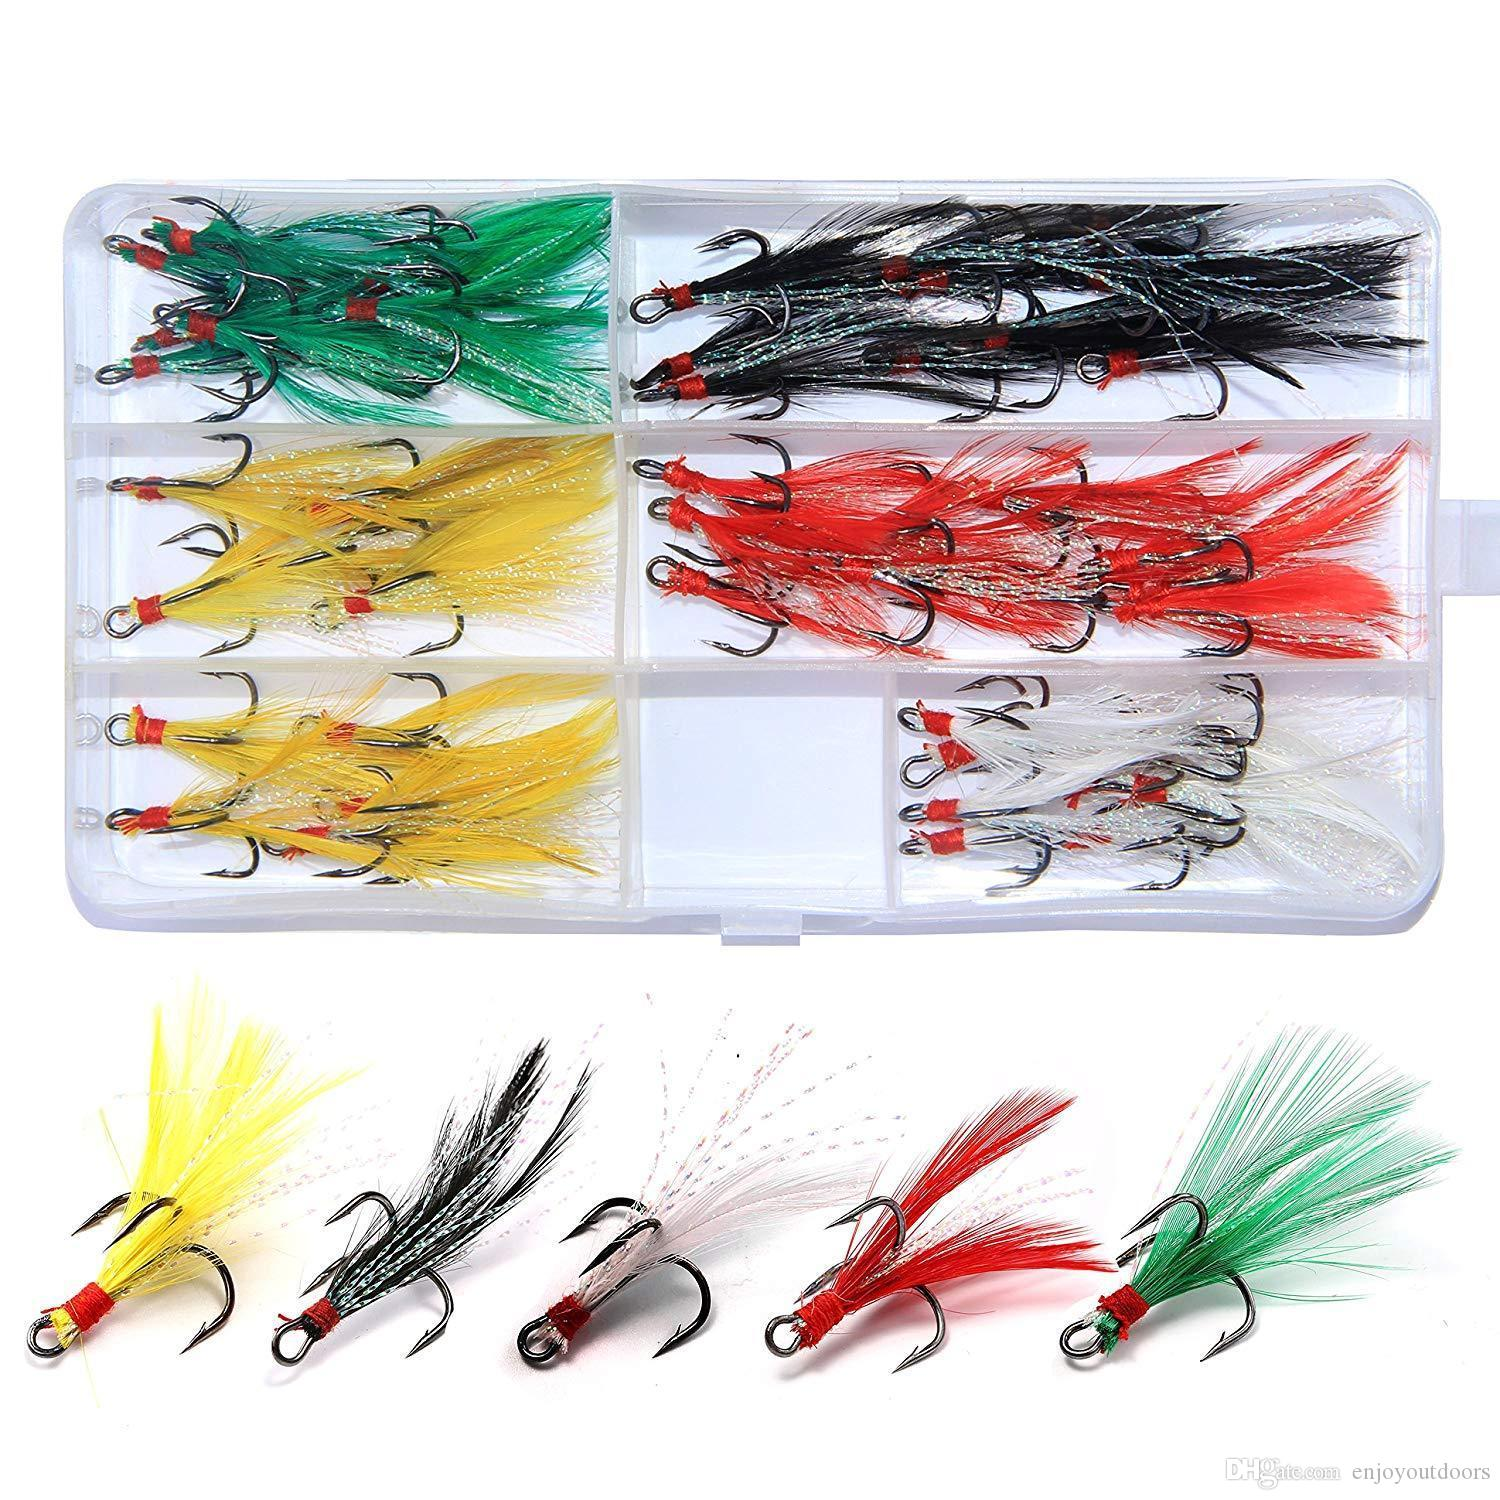 Feather Trolling Bass Hooks Baits Fishing Lures DIY Accessory 10Pcs per Pack